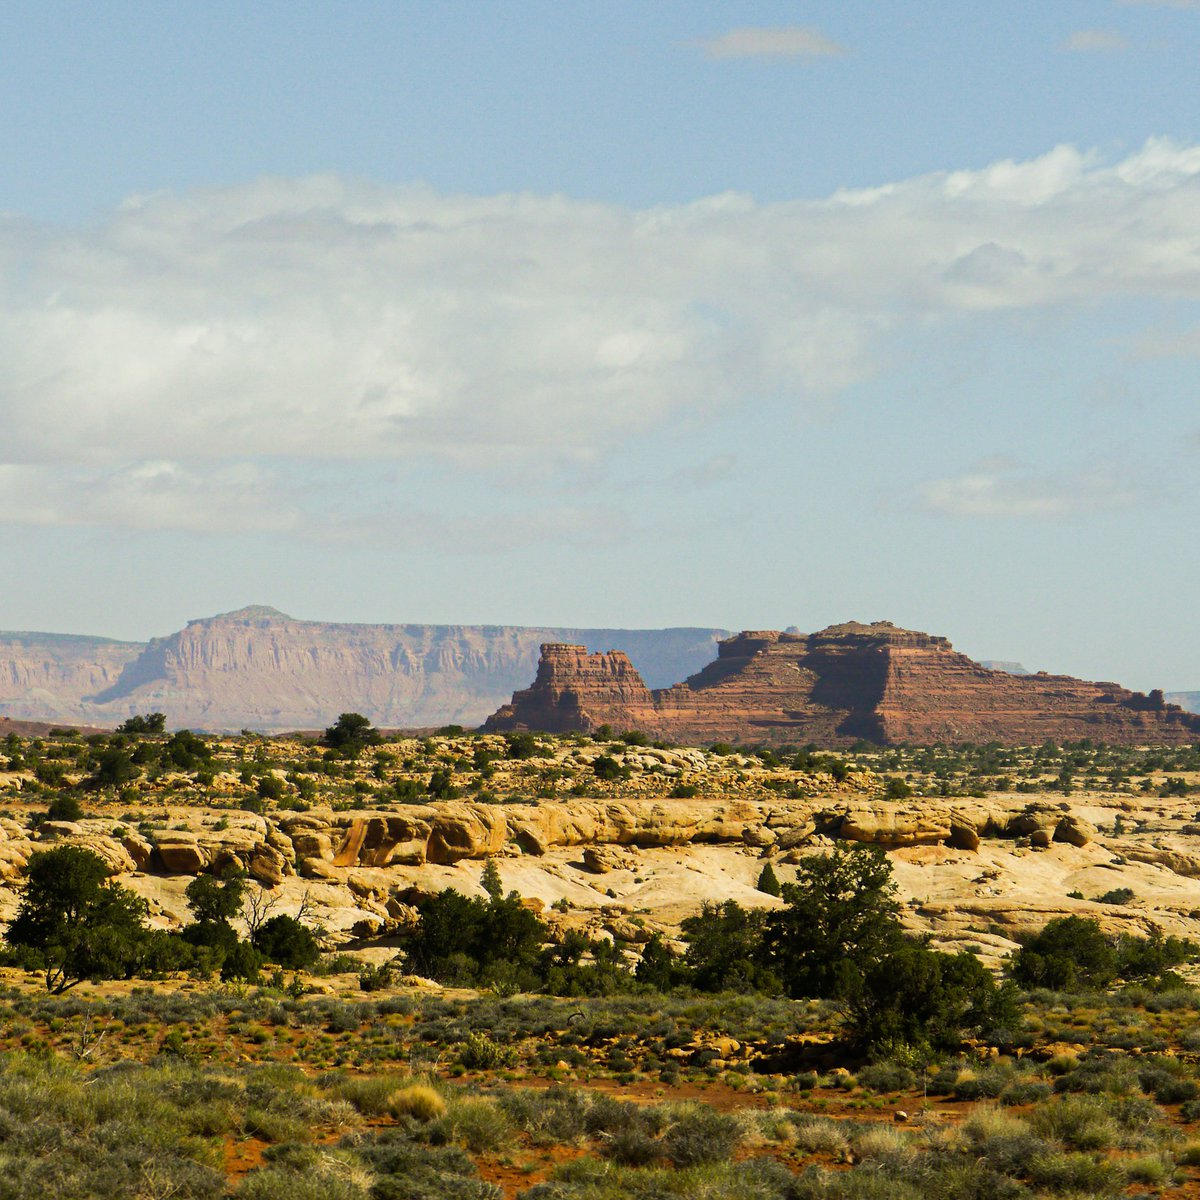 Scenic image of canyonlands in Utah